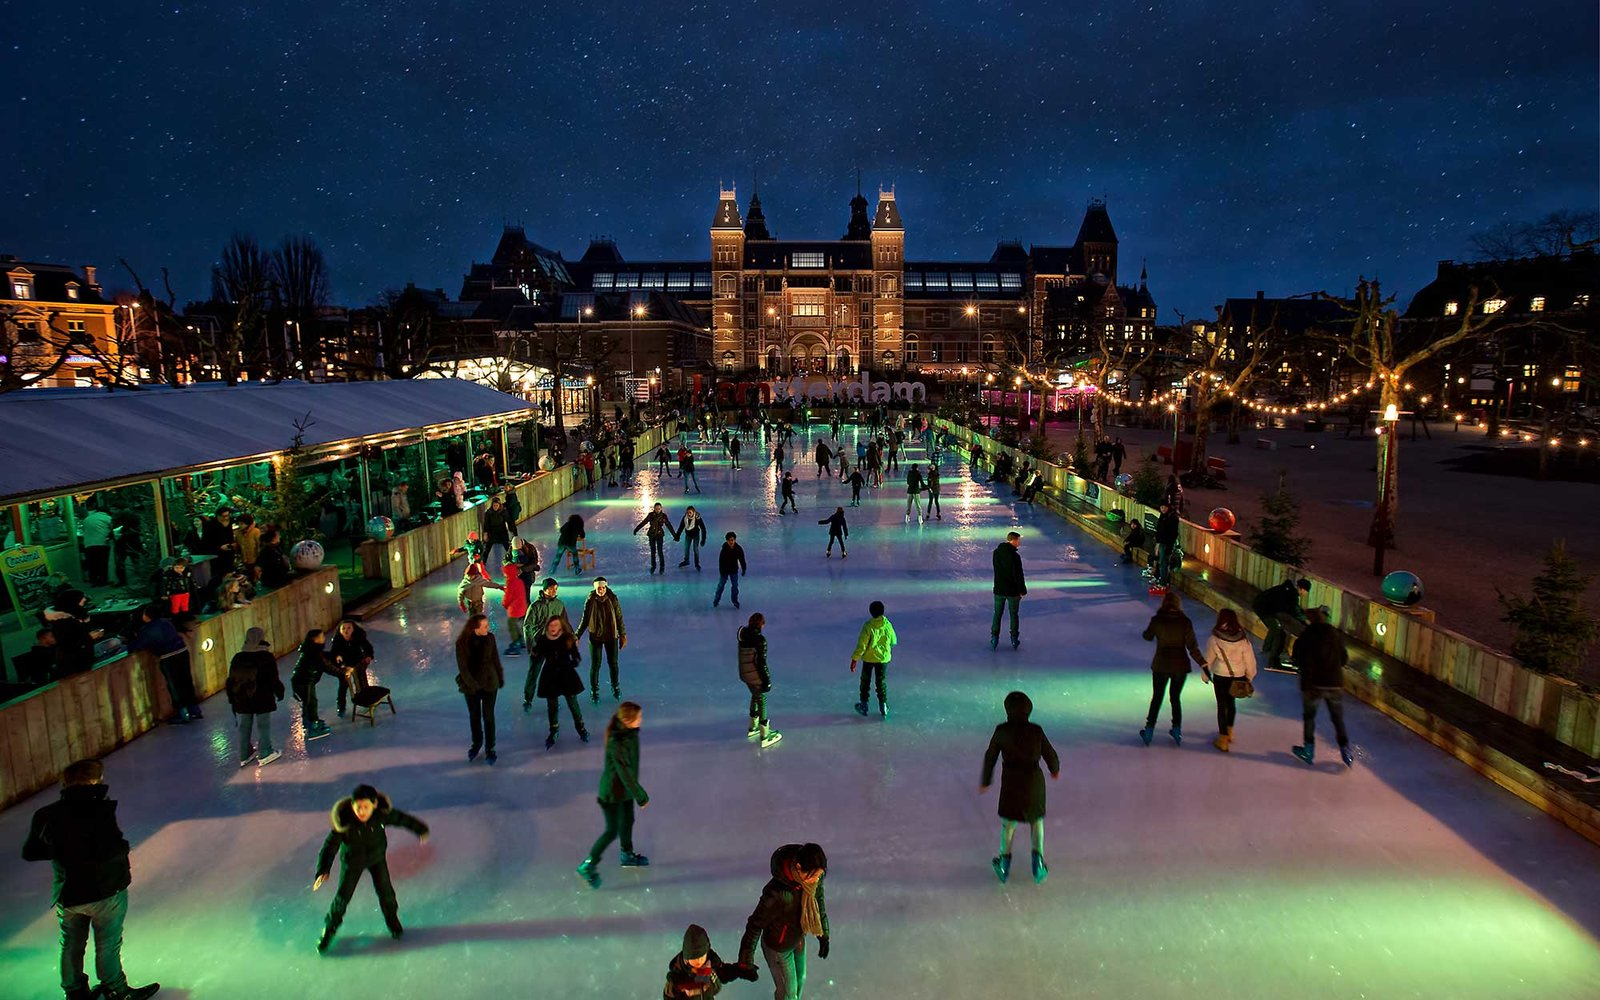 [UNVERIFIED CONTENT] Crowded ice skating rink with starry sky at night, Museumplein Amsterdam. In front of the Rijksmuseum.